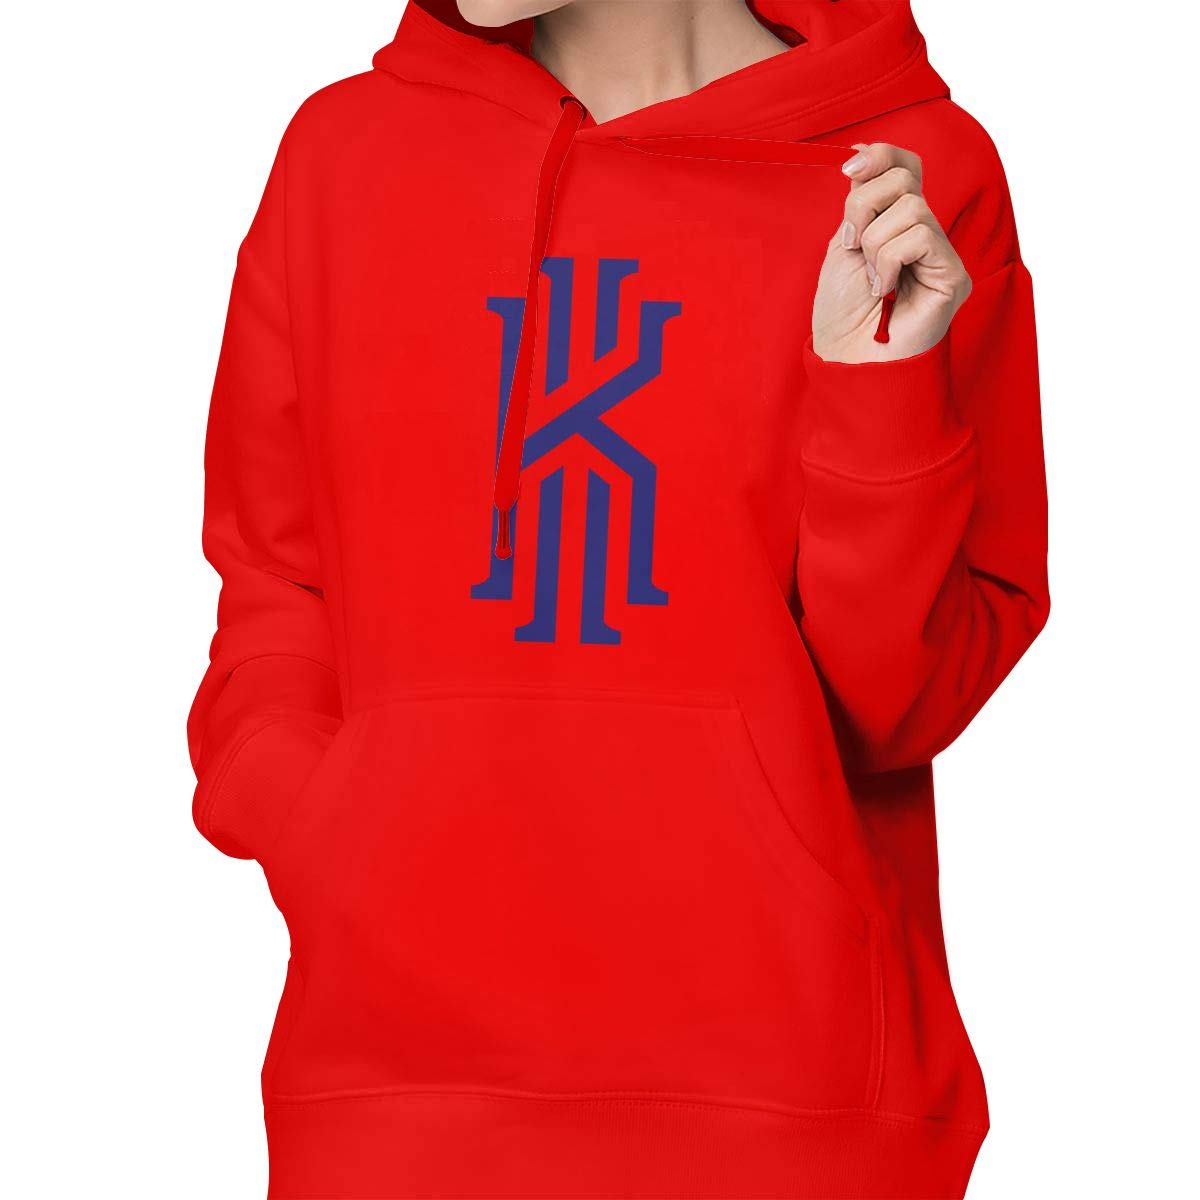 Womens Pullover Hoodie Kyrie K Irving Shirts Shirt Hooded Sweatshirt Hoodies for Women Girls Clothes Outdoor Sport Tops Black